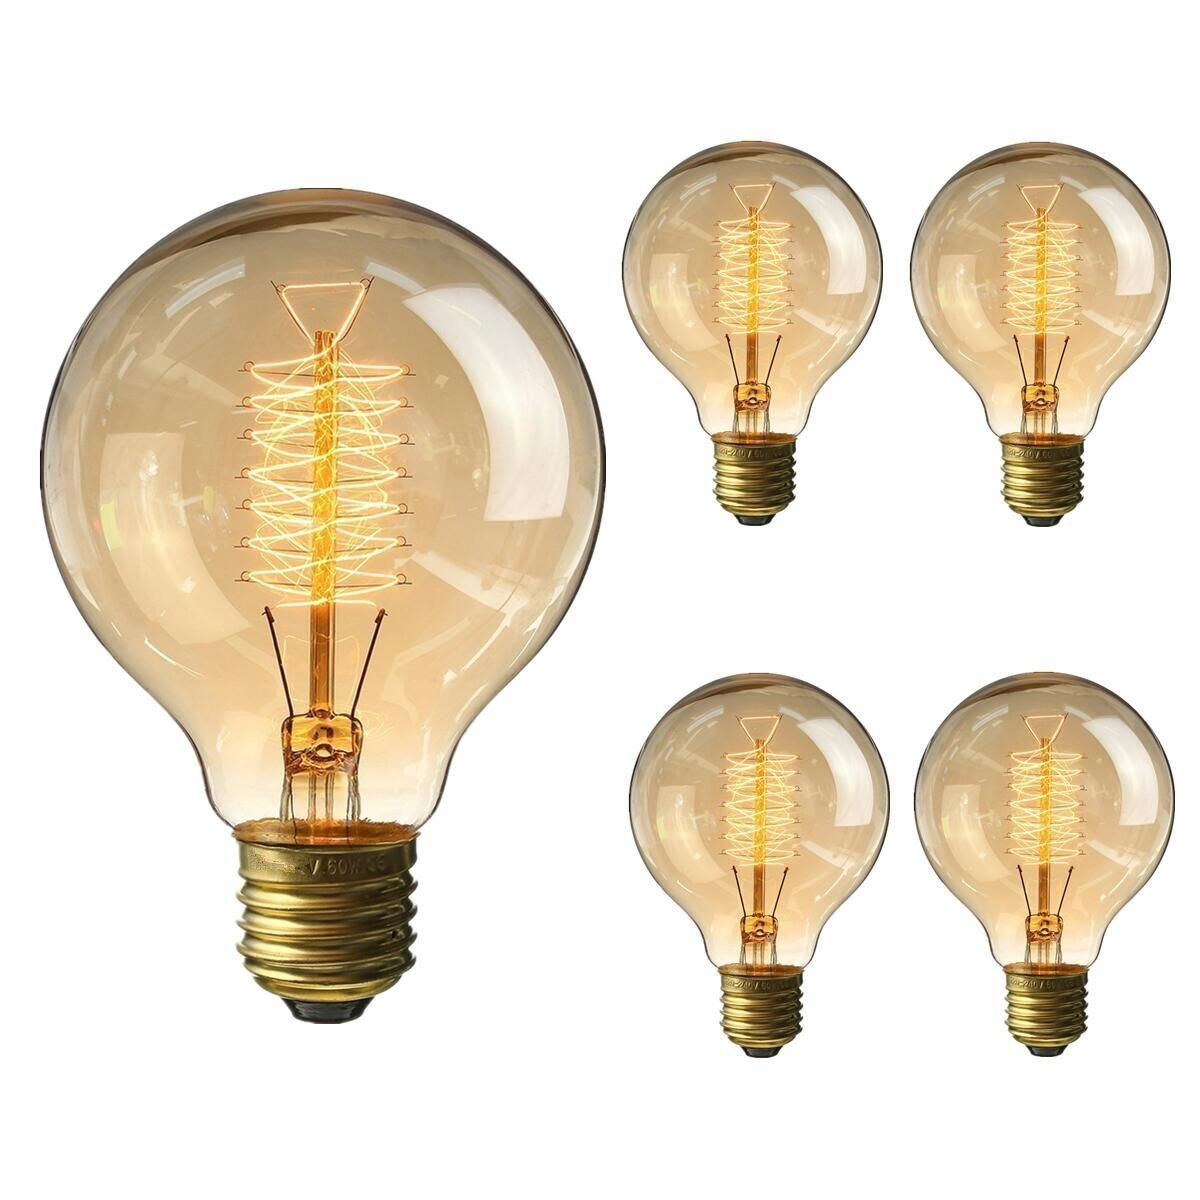 KINGSO Vintage Edison Bulb 60W Incandescent Antique Dimmable Light Bulb Dimmable for Home Light Fixtures Squirrel Cage Filament E27 Base G80 110V (4 Pack) 0